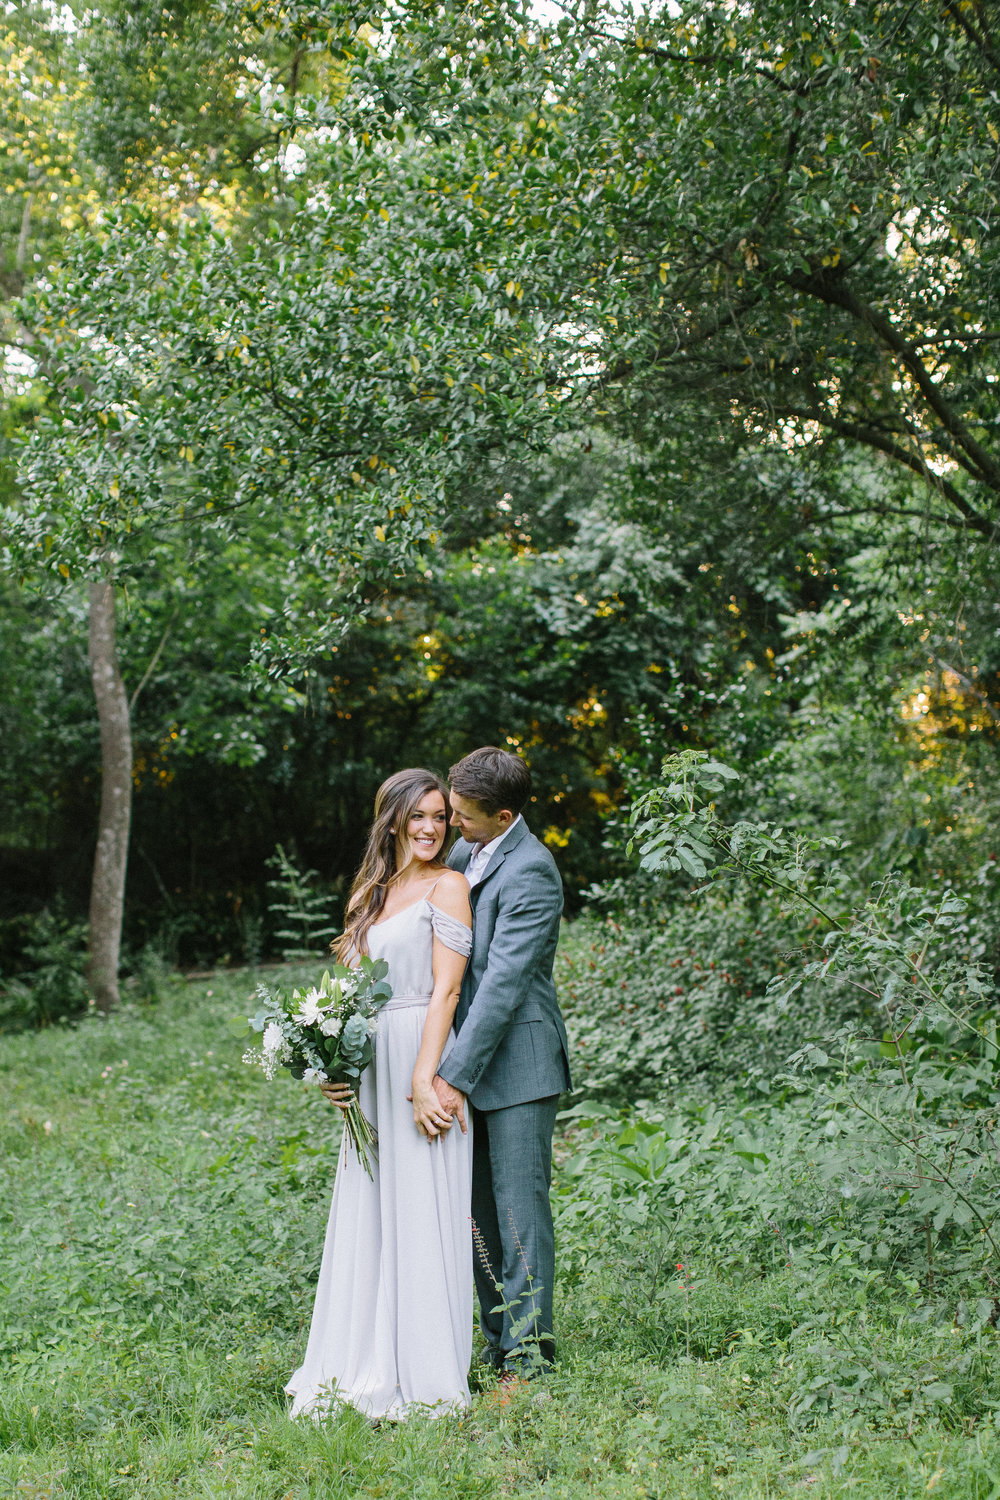 Ellen-Ashton-Photography-Dallas-Wedding-Photographer-Dallas-Wedding-Planner-Austin-Wedding-Photographer-Houston-Wedding-Photographer-Farmhouse-Weddings-Mongomery-Texas-Paris-Wedding-Photographer-Denver-Wedding-Photographer